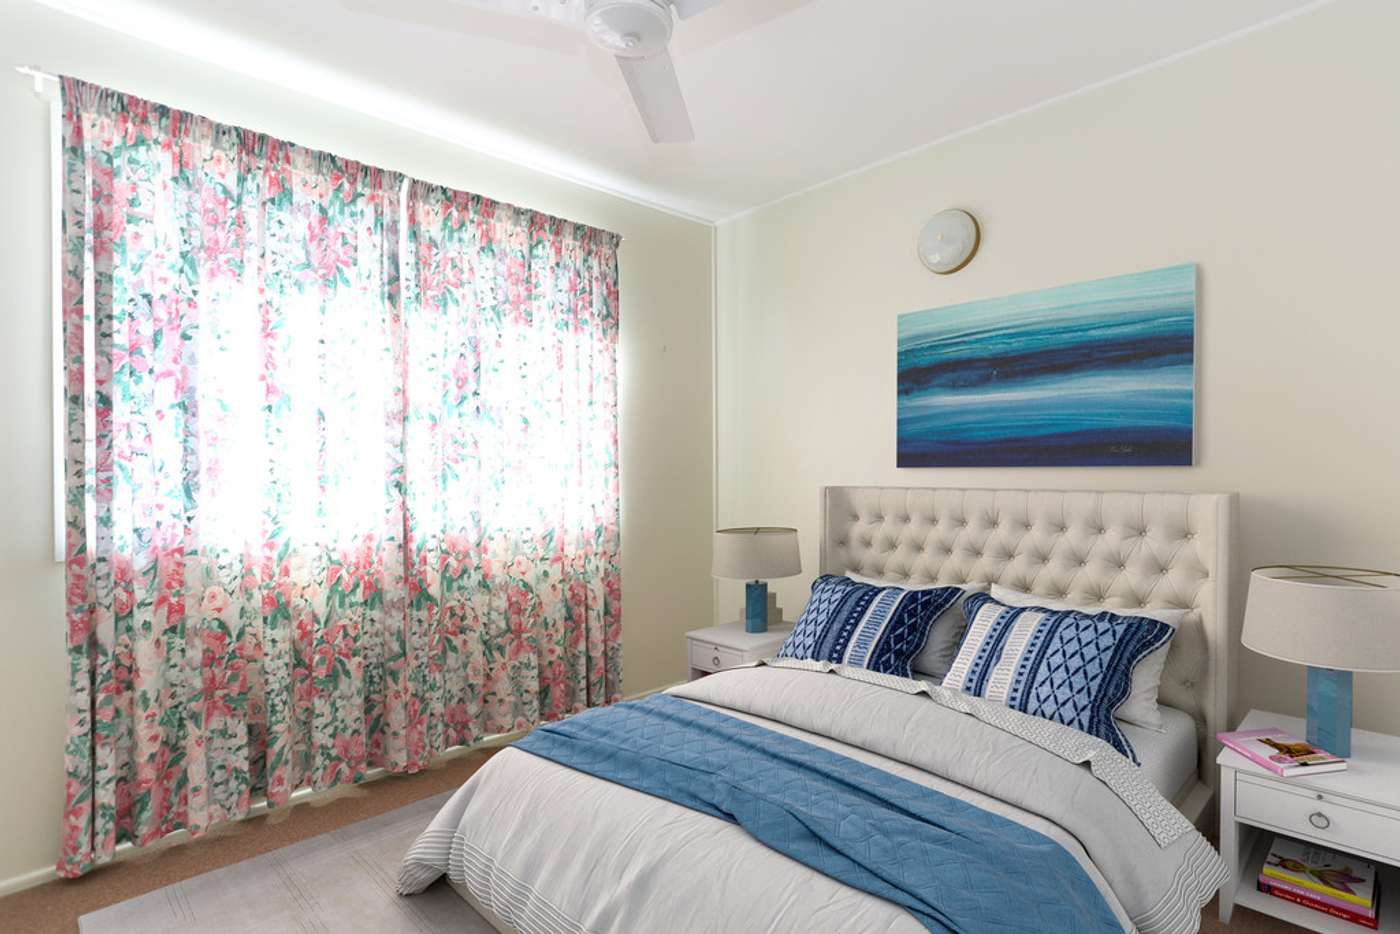 Sixth view of Homely house listing, 6 Denman Avenue, Shoal Point QLD 4750